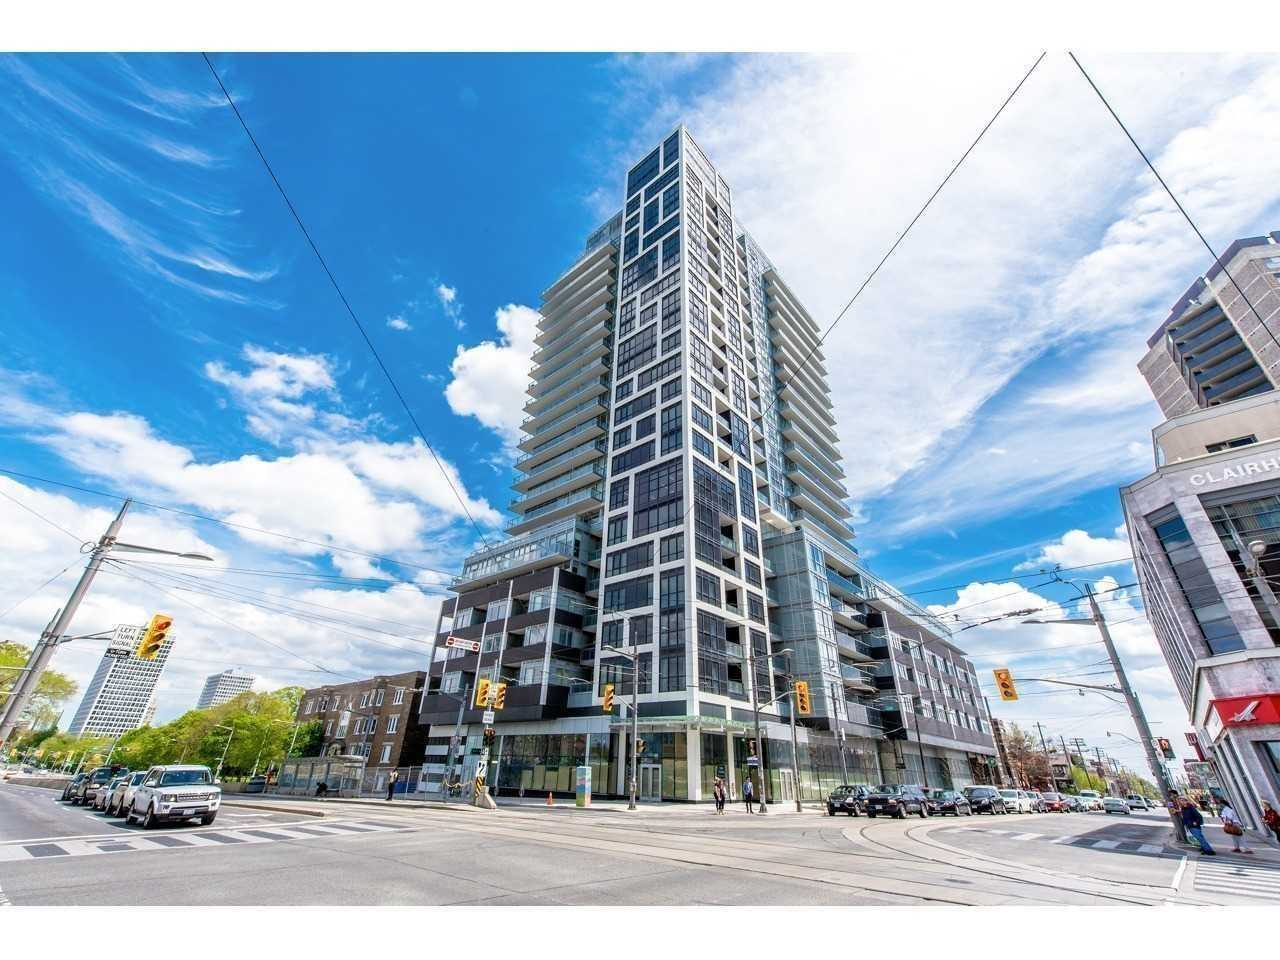 501-st-clair-ave-w